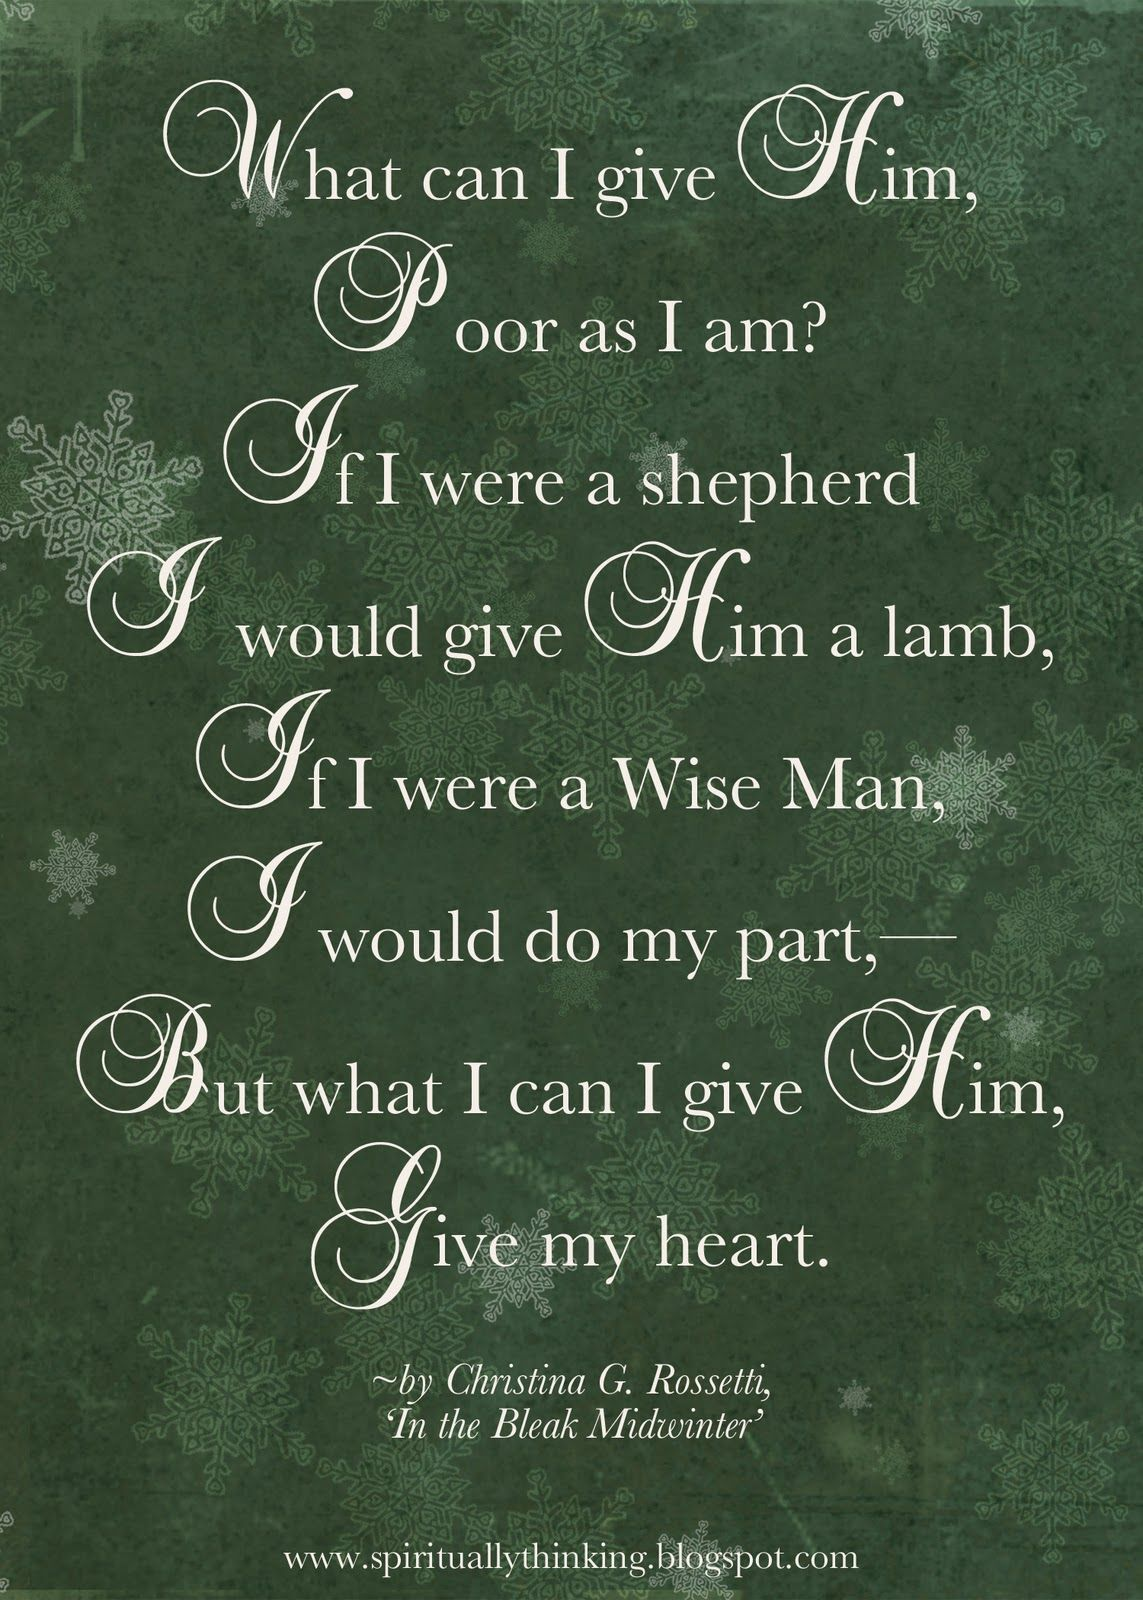 What Can I Give Him? Christmas quotes, Christmas program